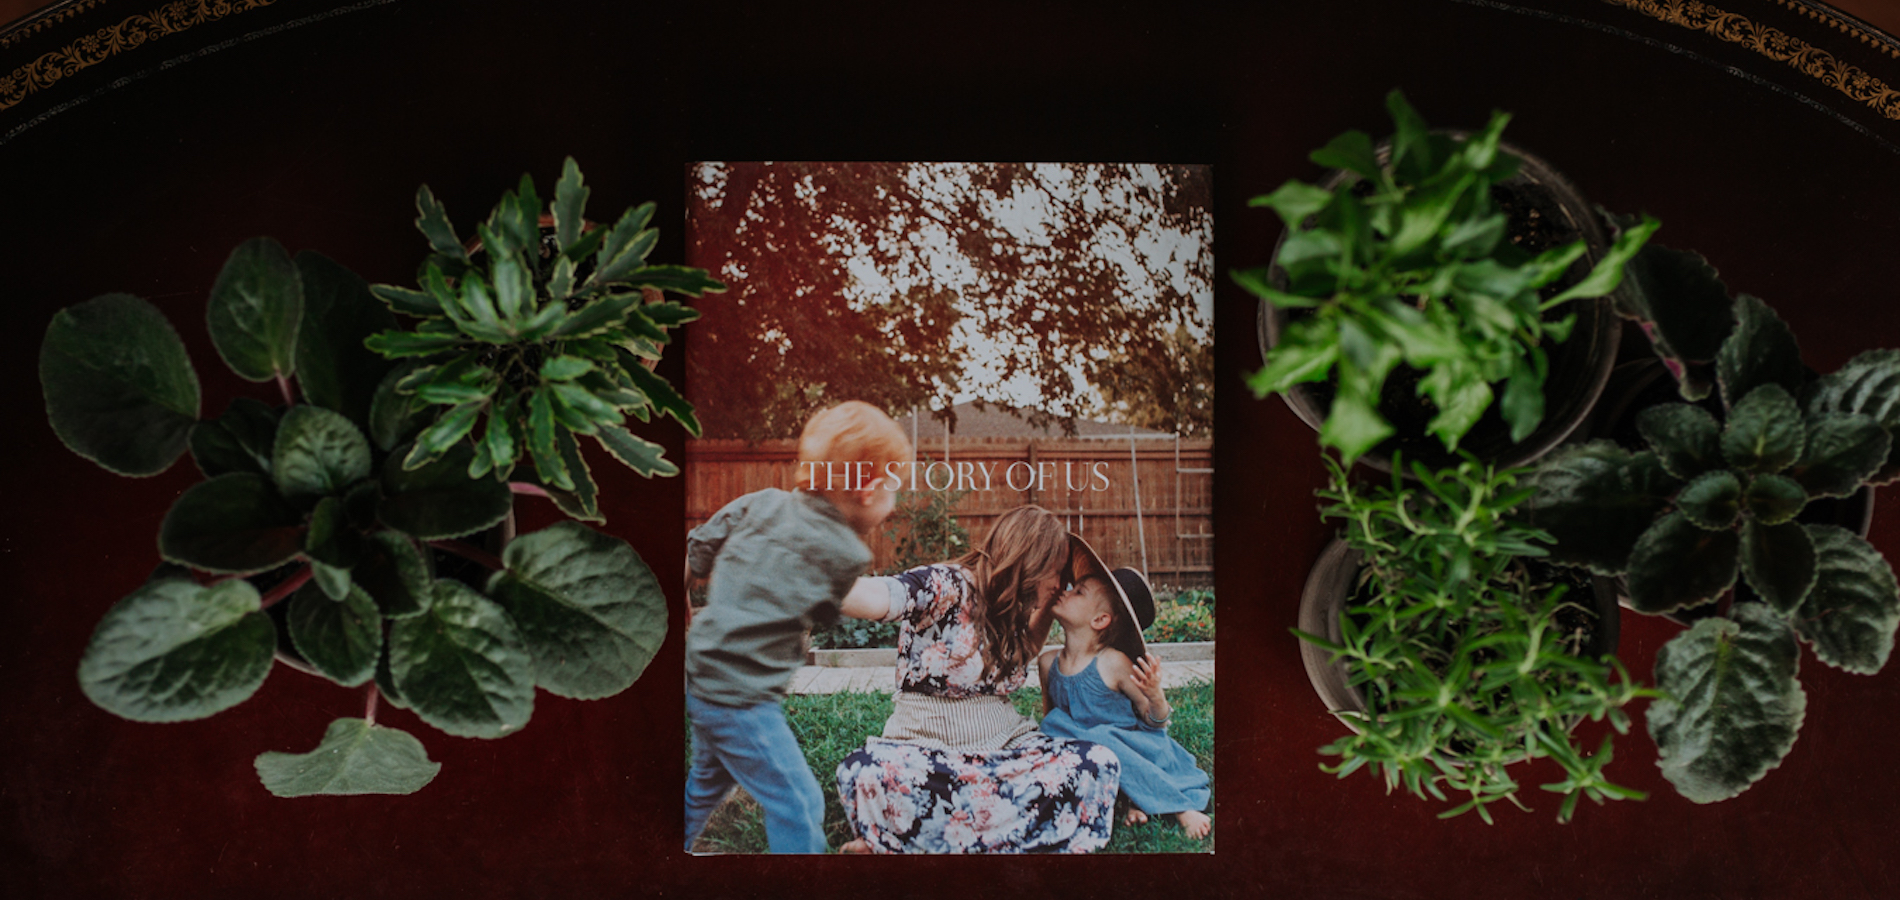 Artifact Uprising Hardcover Photo Book titled The Story of Us featuring family photo of mother with two young children